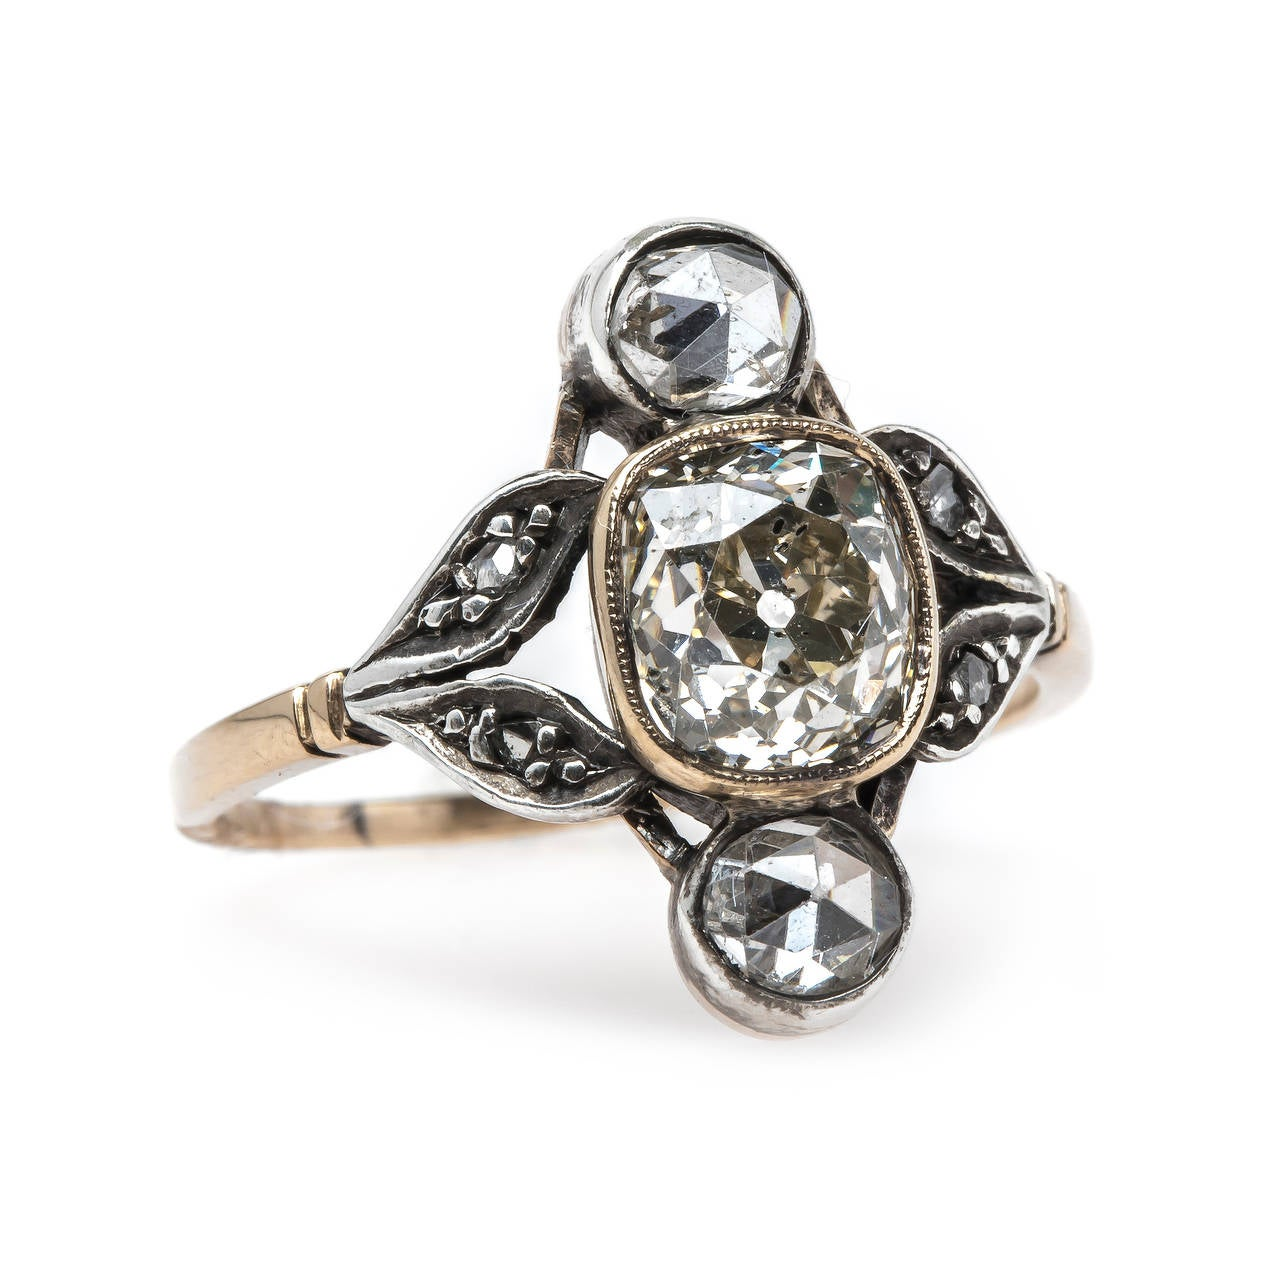 Art Nouveau Engagement Ring with Extremely Unique Design at 1stdibs